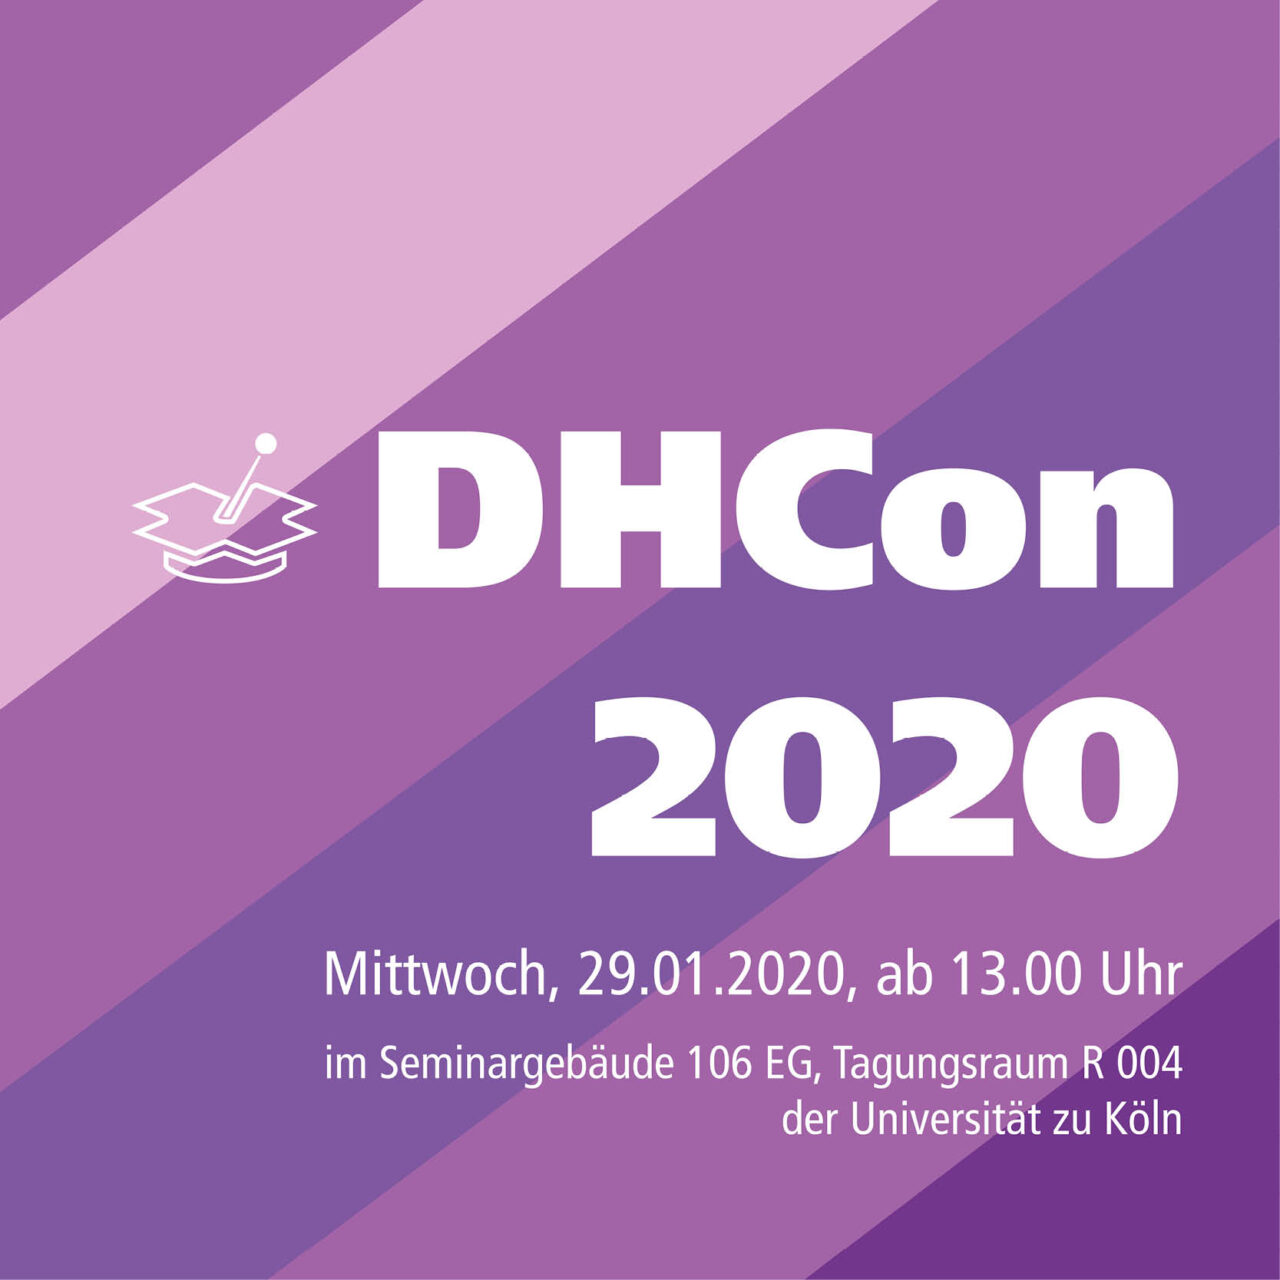 poster advertising the DHCon 2020